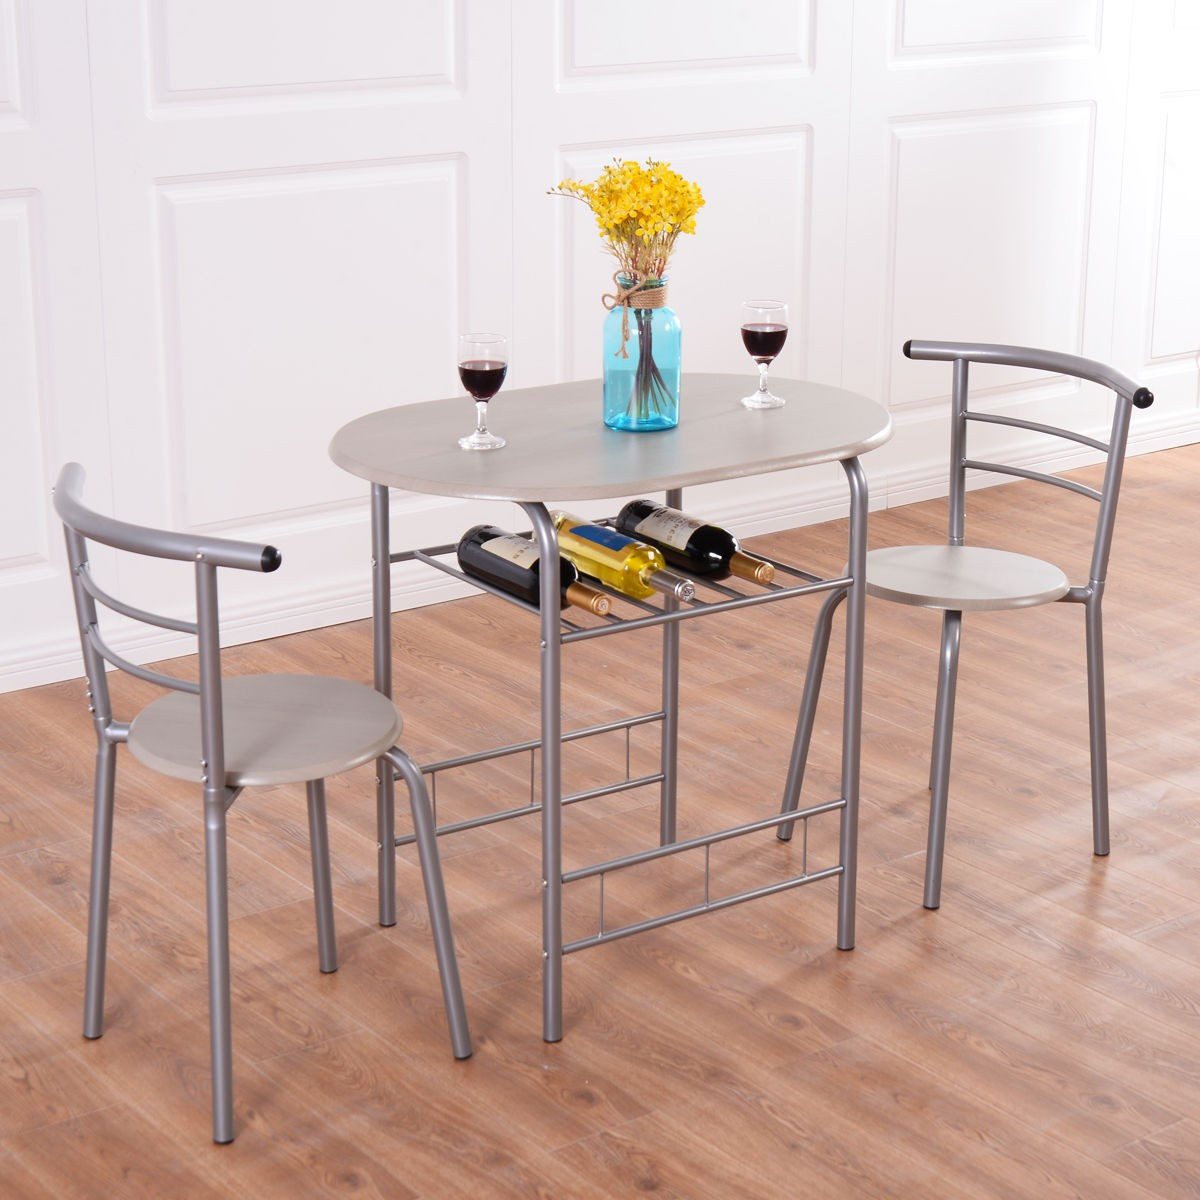 Small Dining Tables Sets: 3pcs Bistro Dining Set Small Kitchen Indoor Outdoor Table